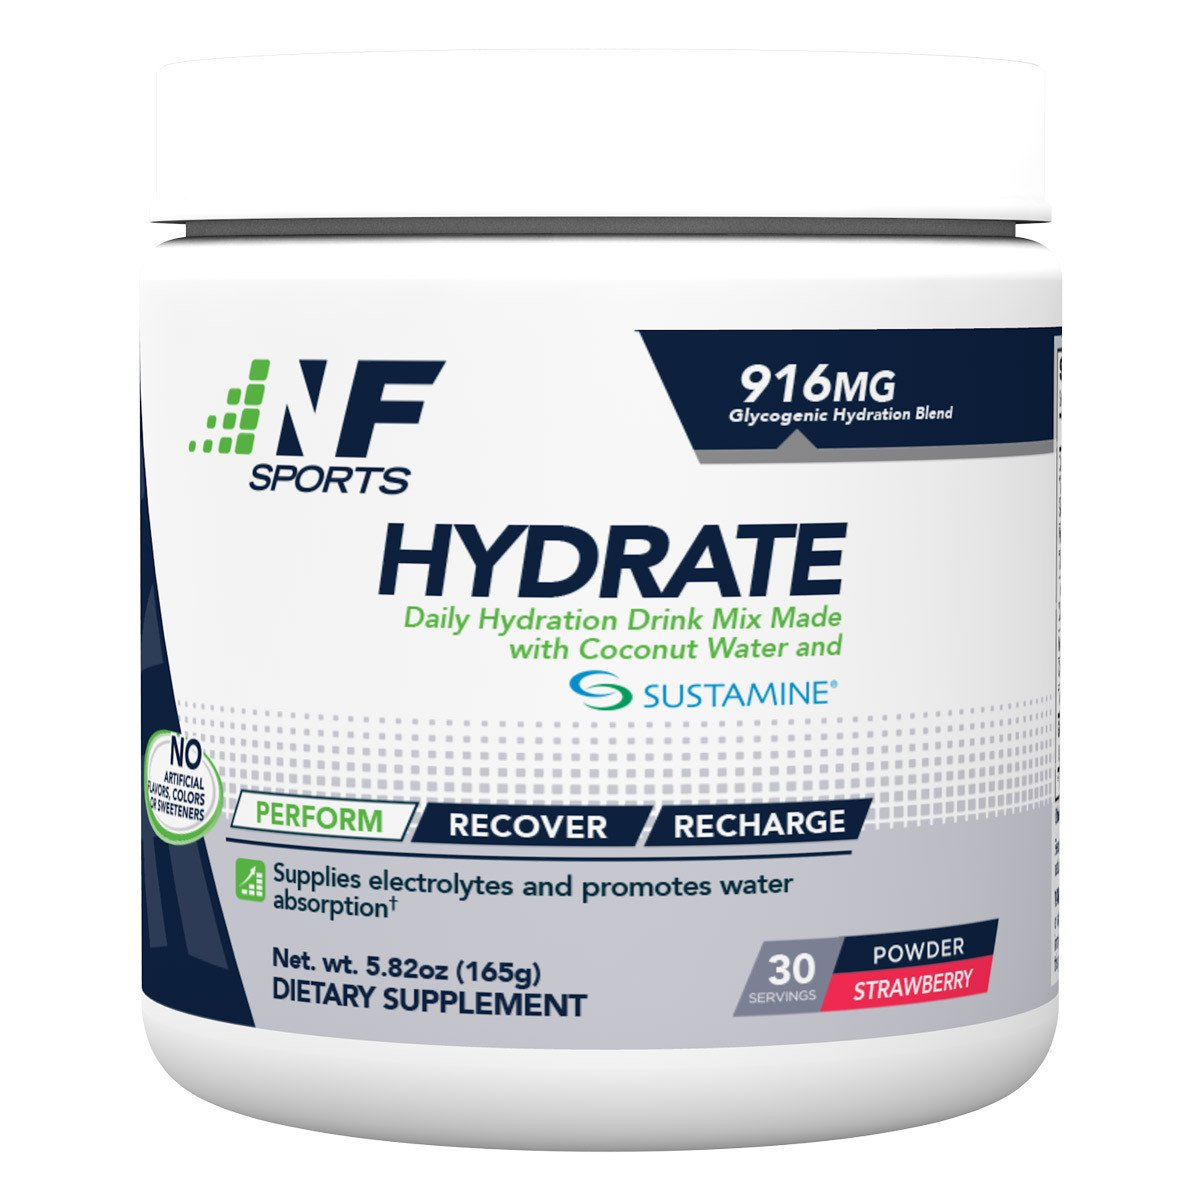 nf-sports-hydrate-strawberry-product-detail-new